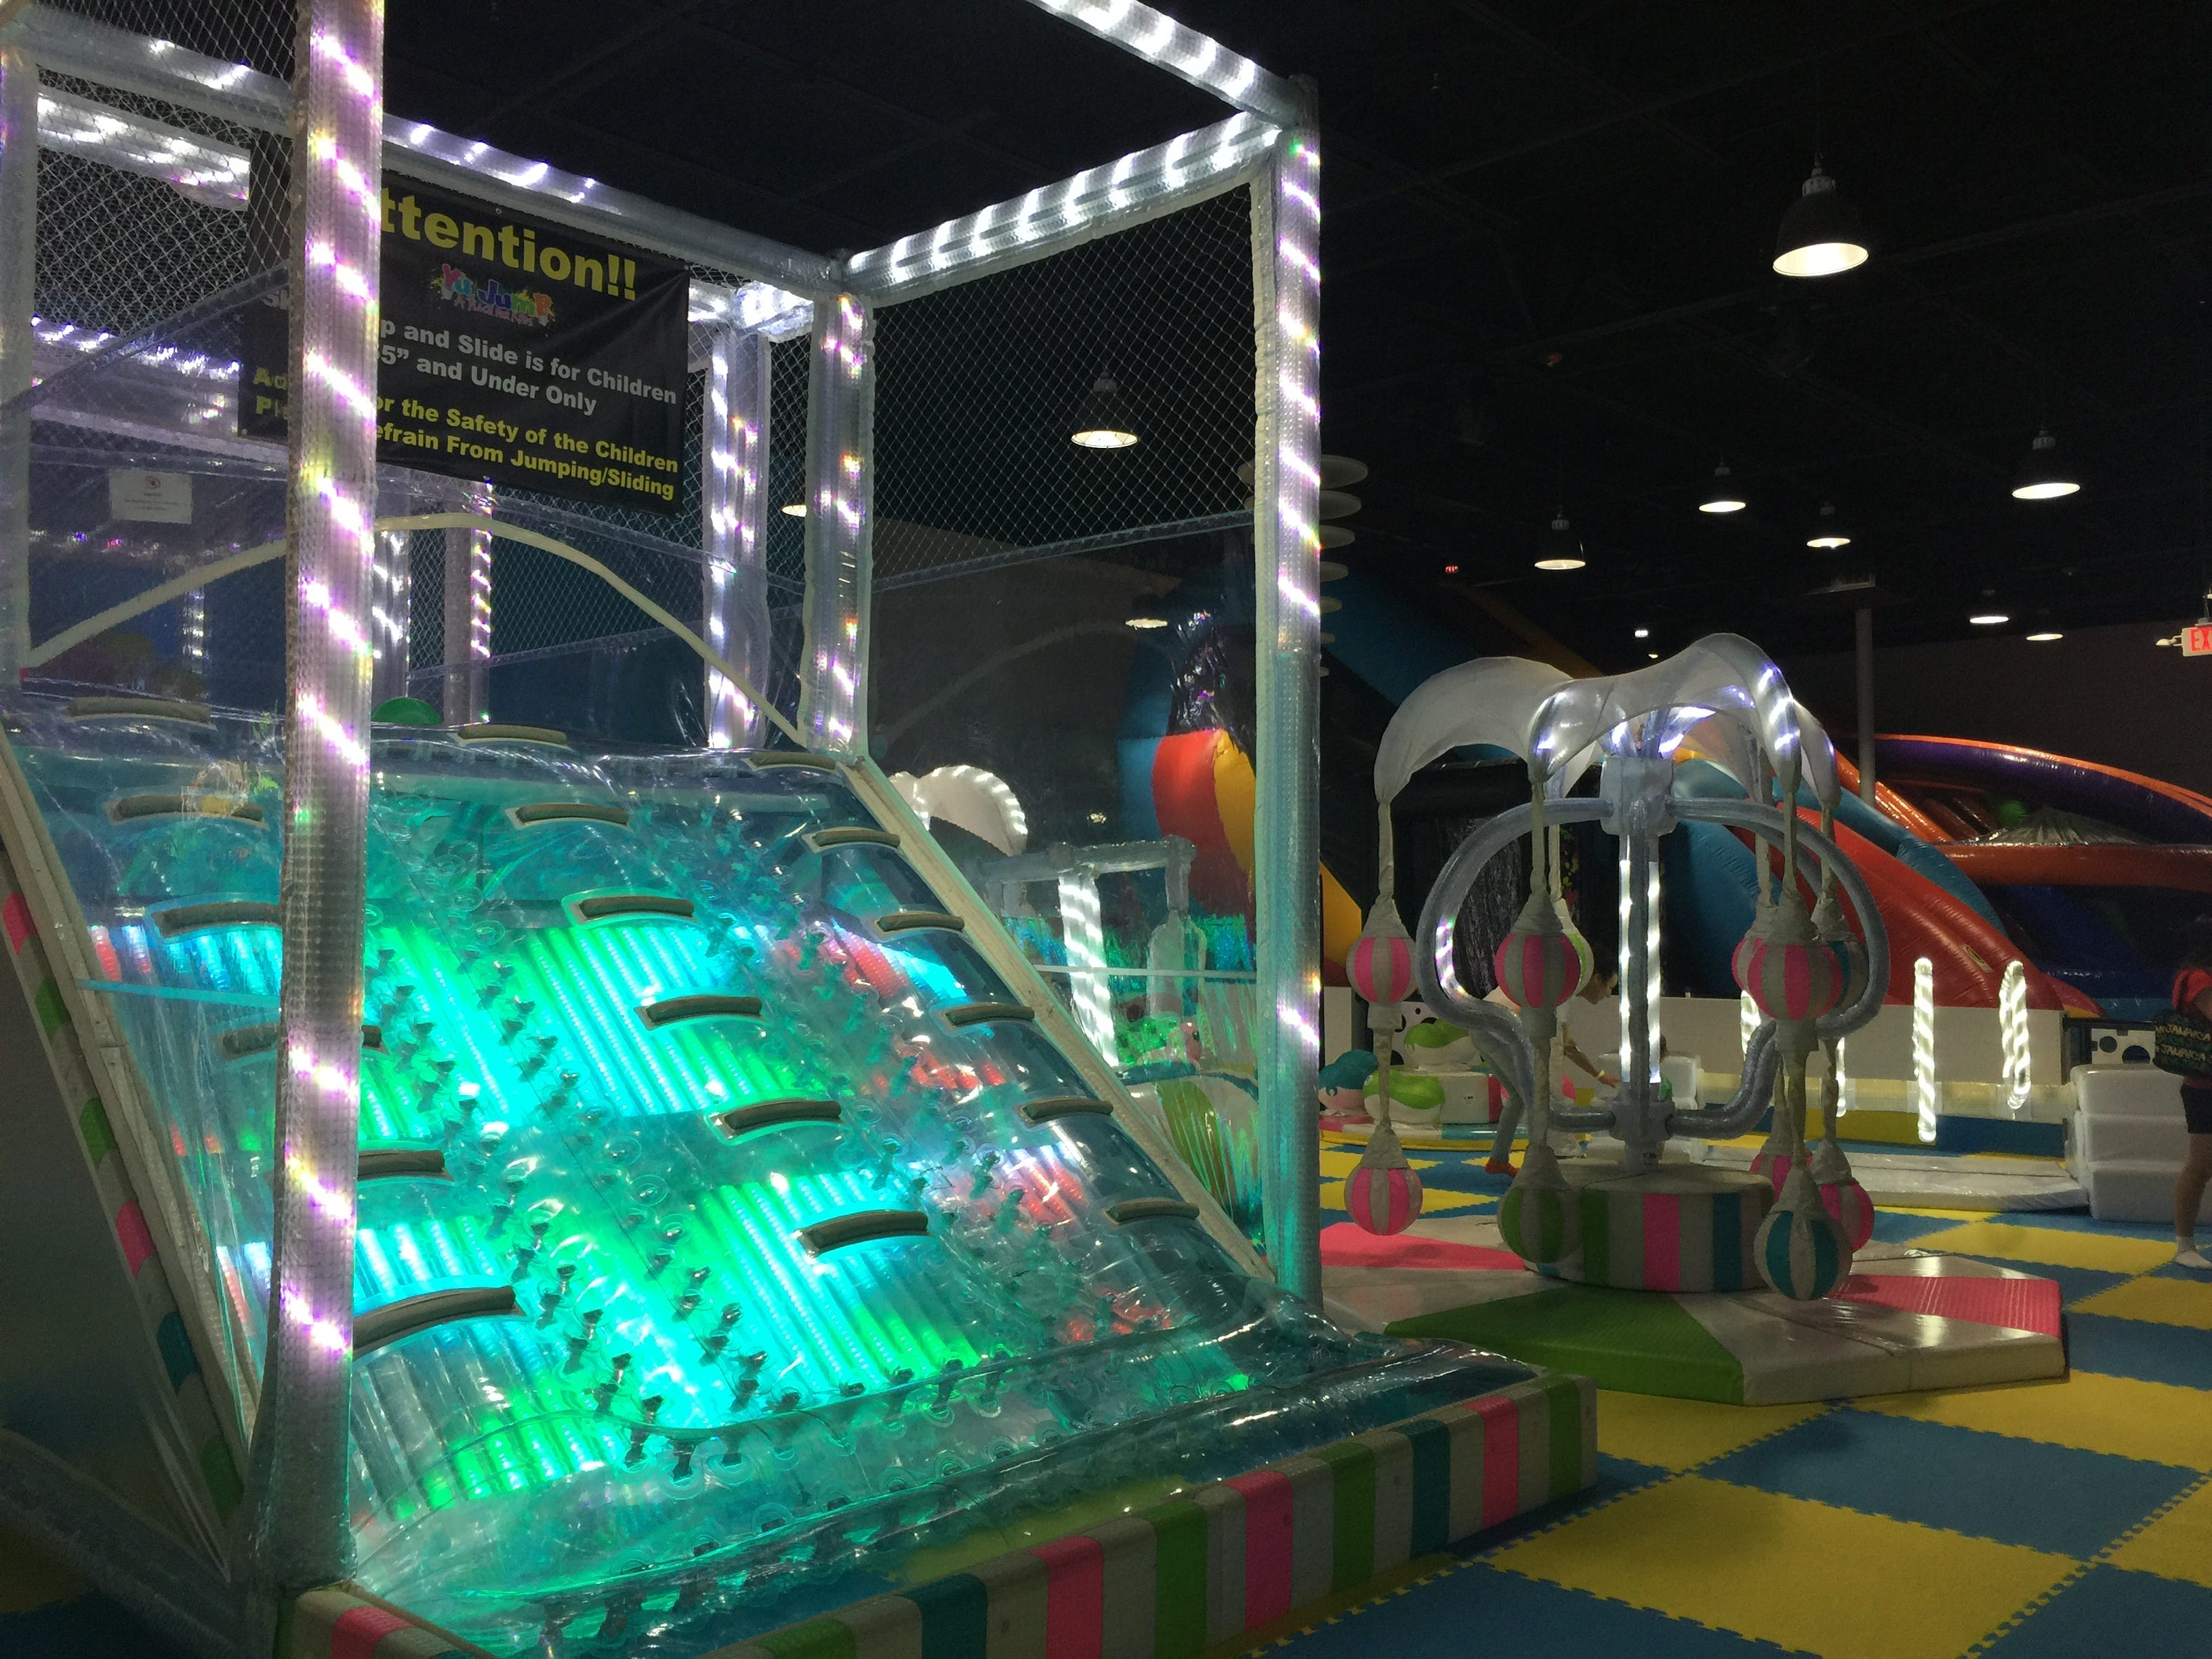 636612882903666603-jump Child's Play: A review of the indoor-activity center Yu Jump